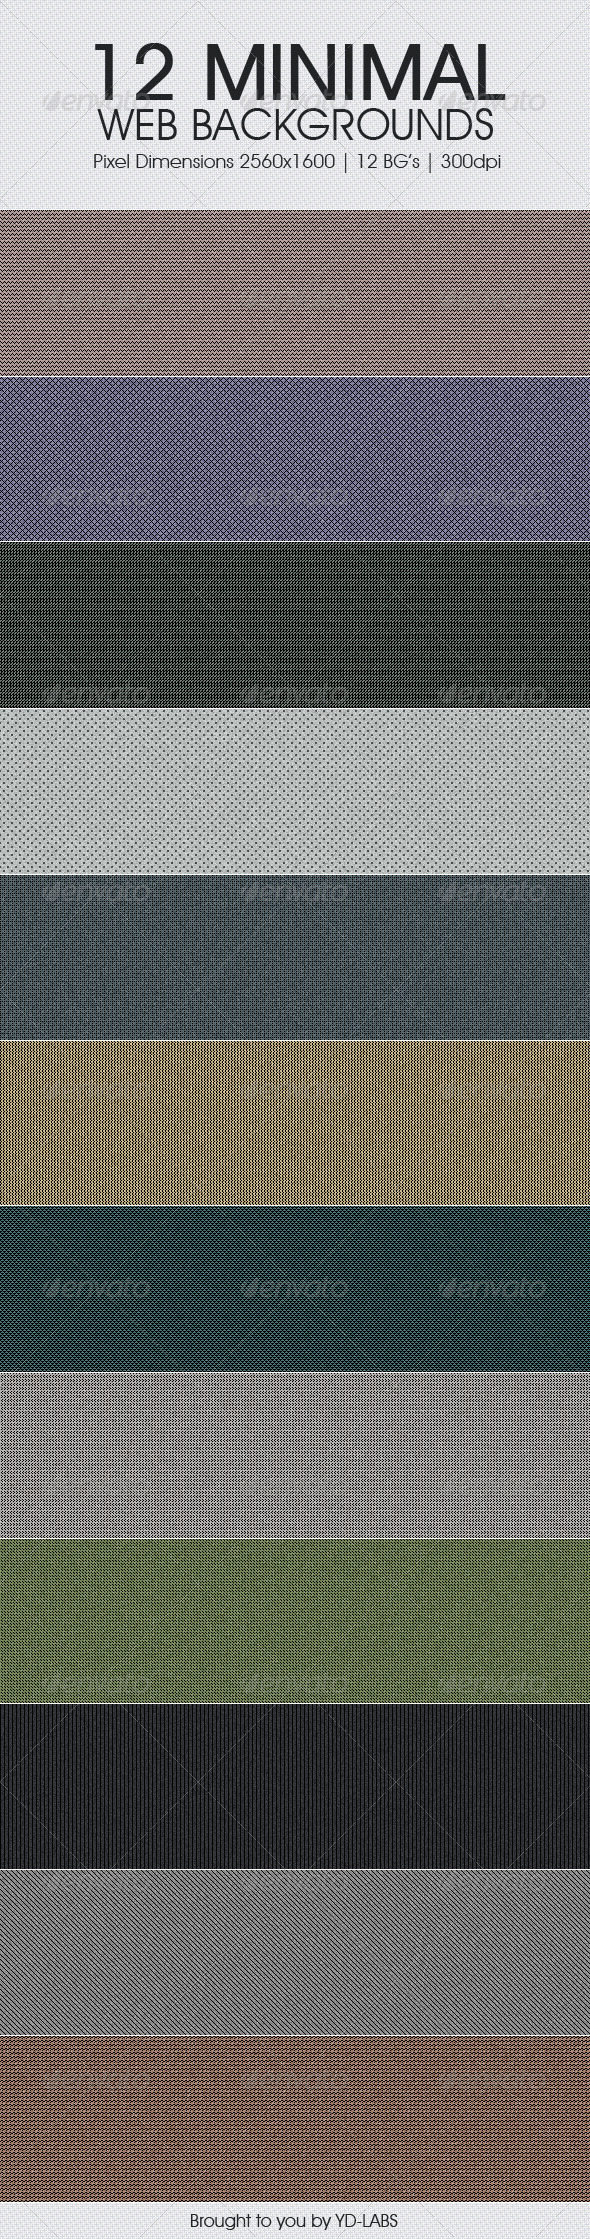 12 Minimal Web Backgrounds - Miscellaneous Backgrounds